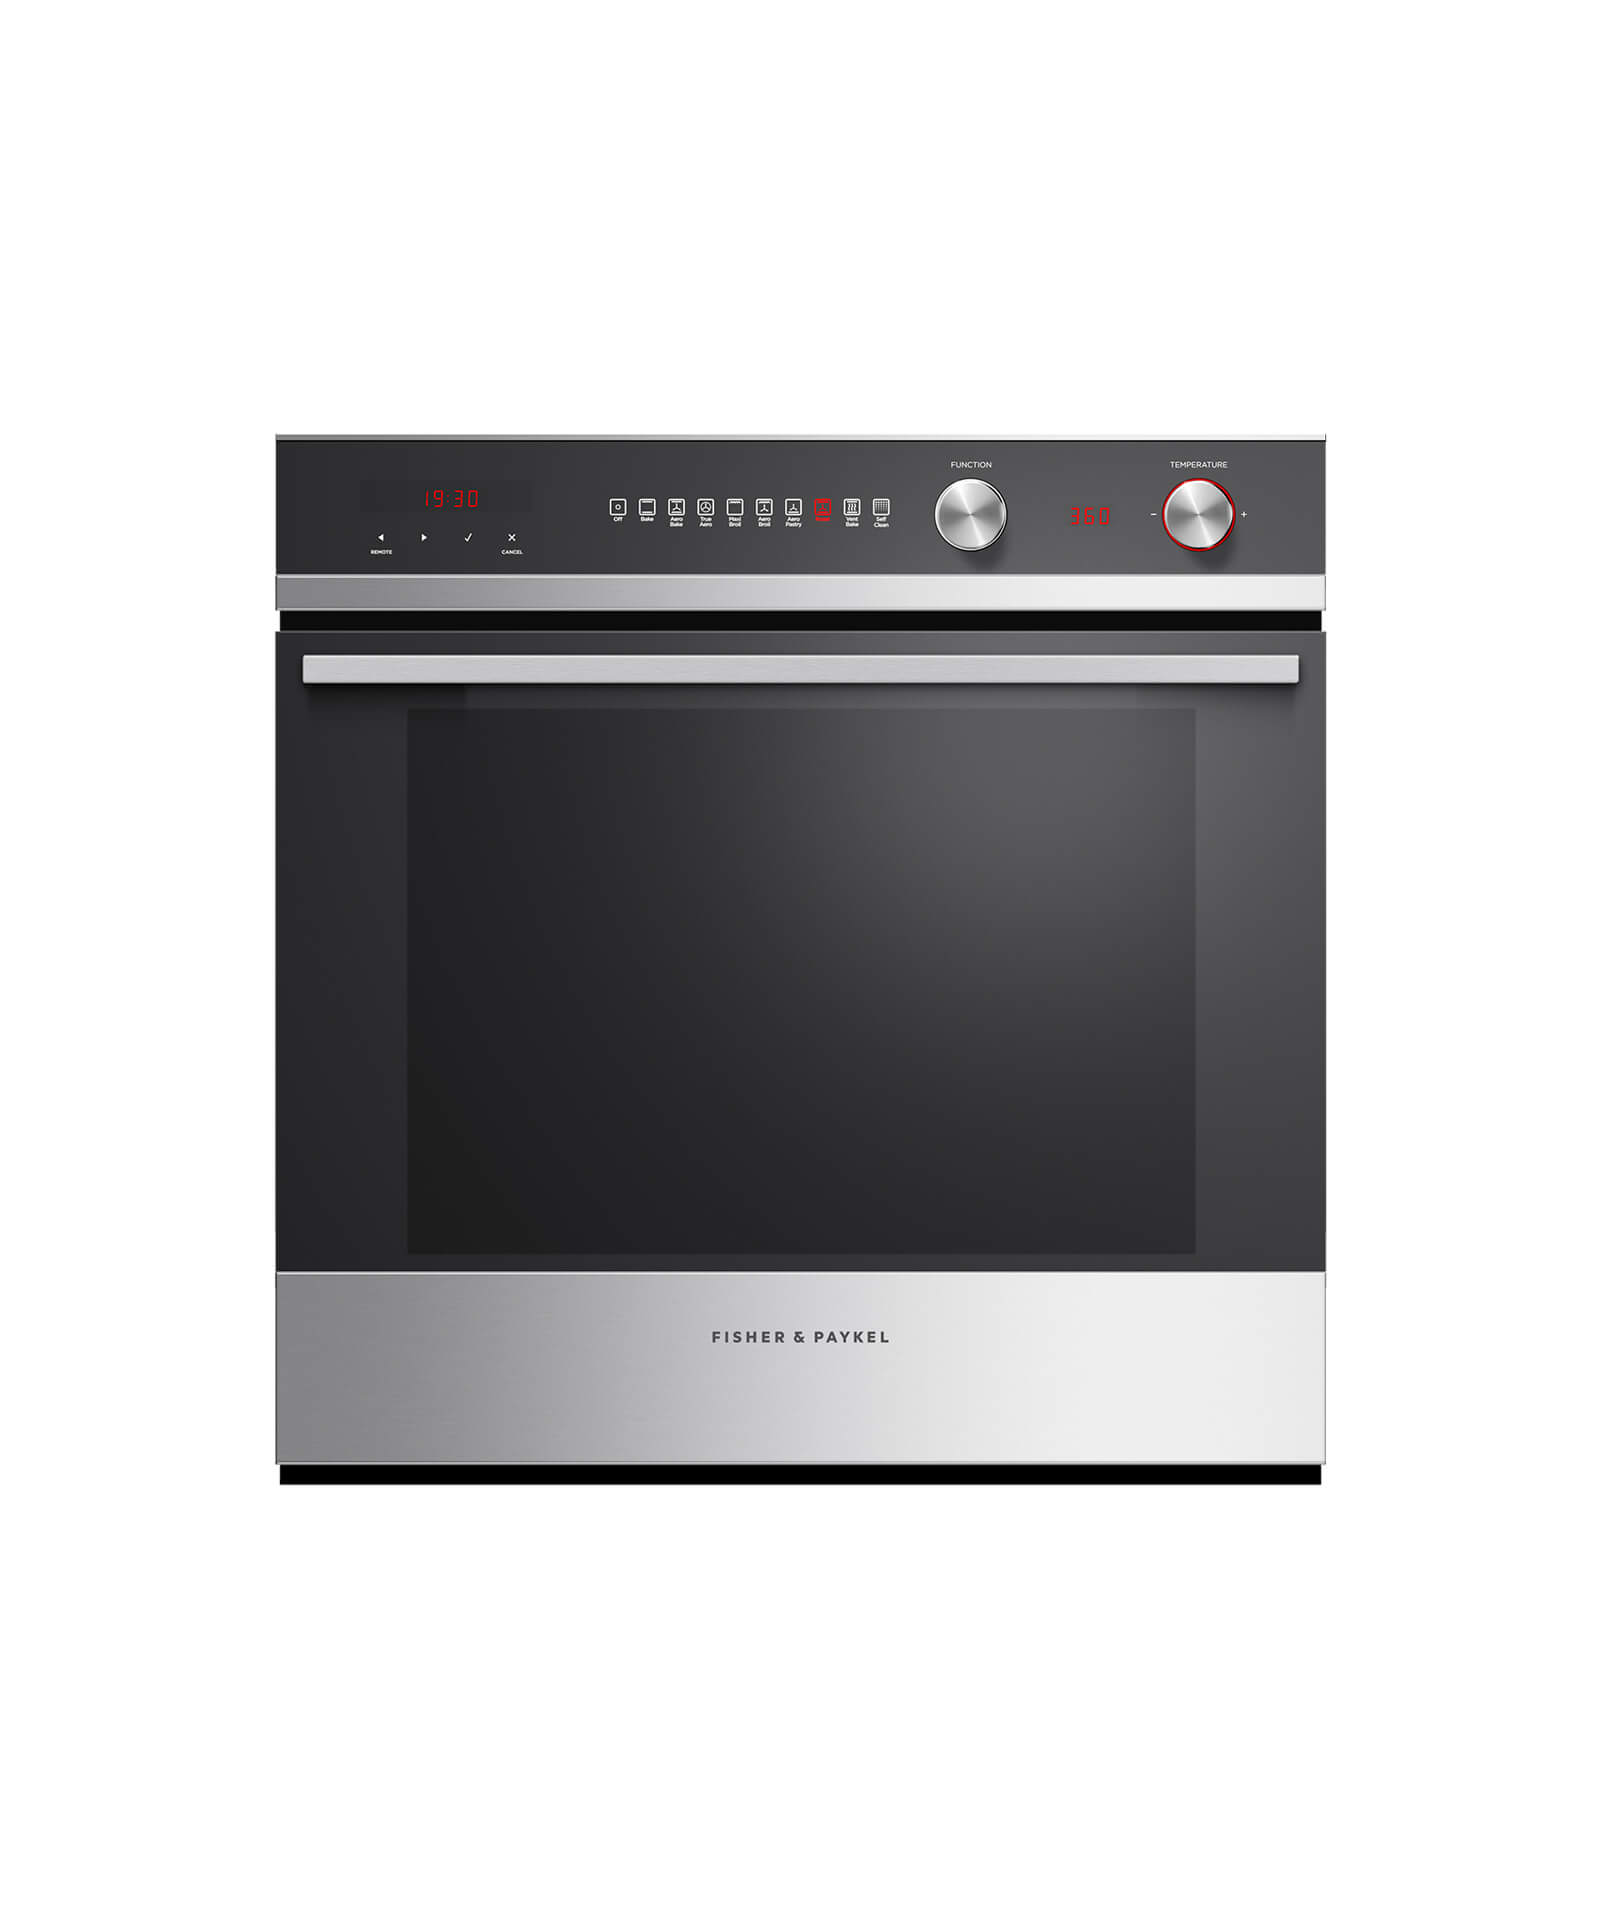 """Fisher and Paykel Built-in Oven, 24"""", 3 cu ft, 9 Function, Self-cleaning"""